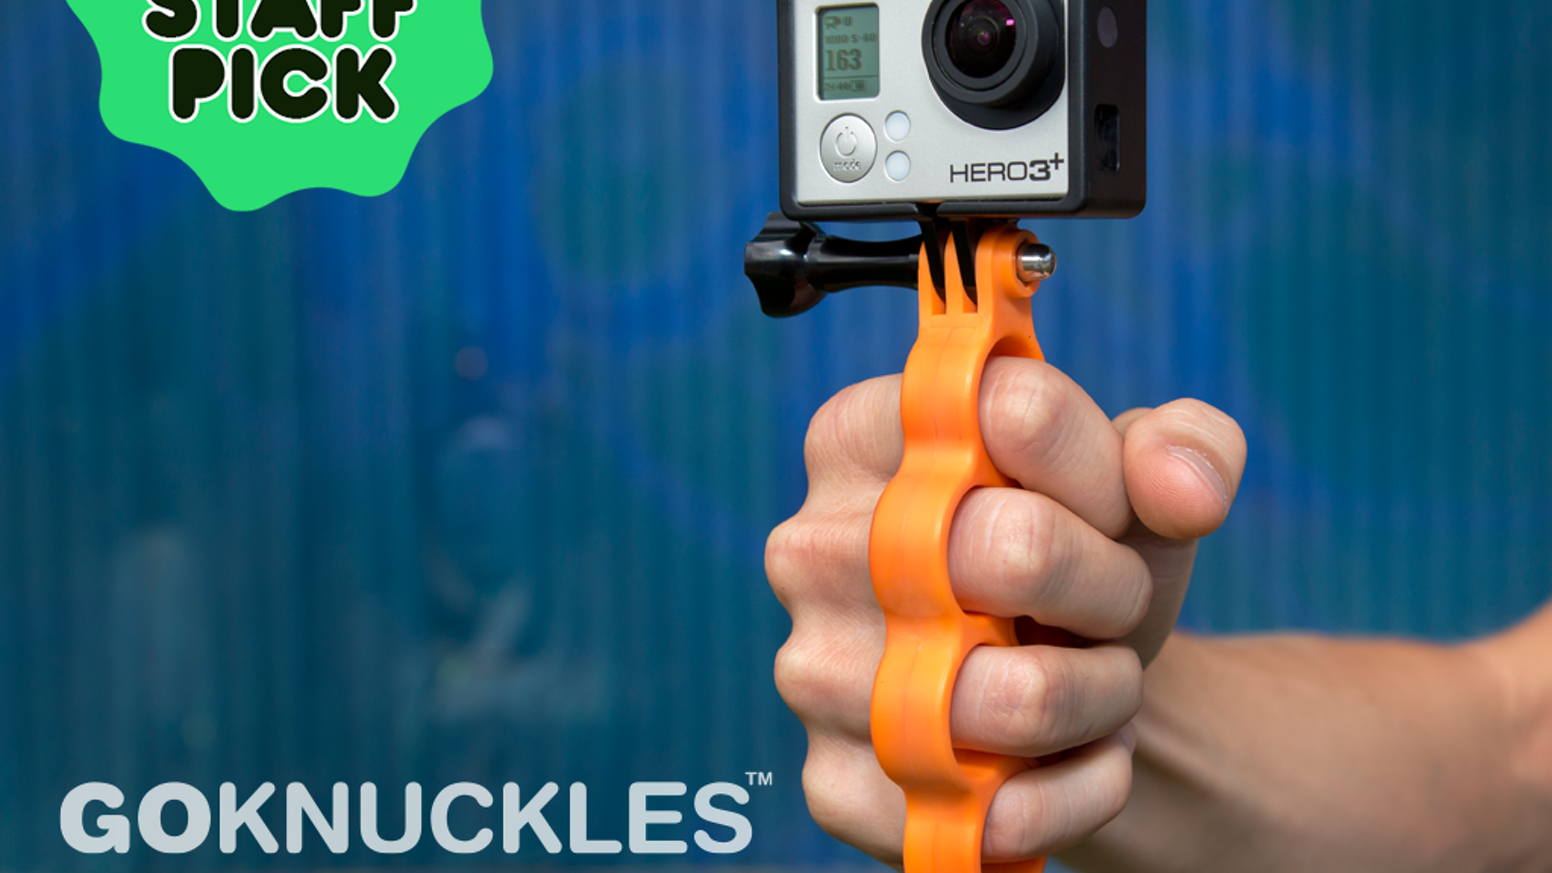 Hit the streets, surf, and snow with GoKnuckles - the most awesome way to mount and use your GoPro® HERO camera.